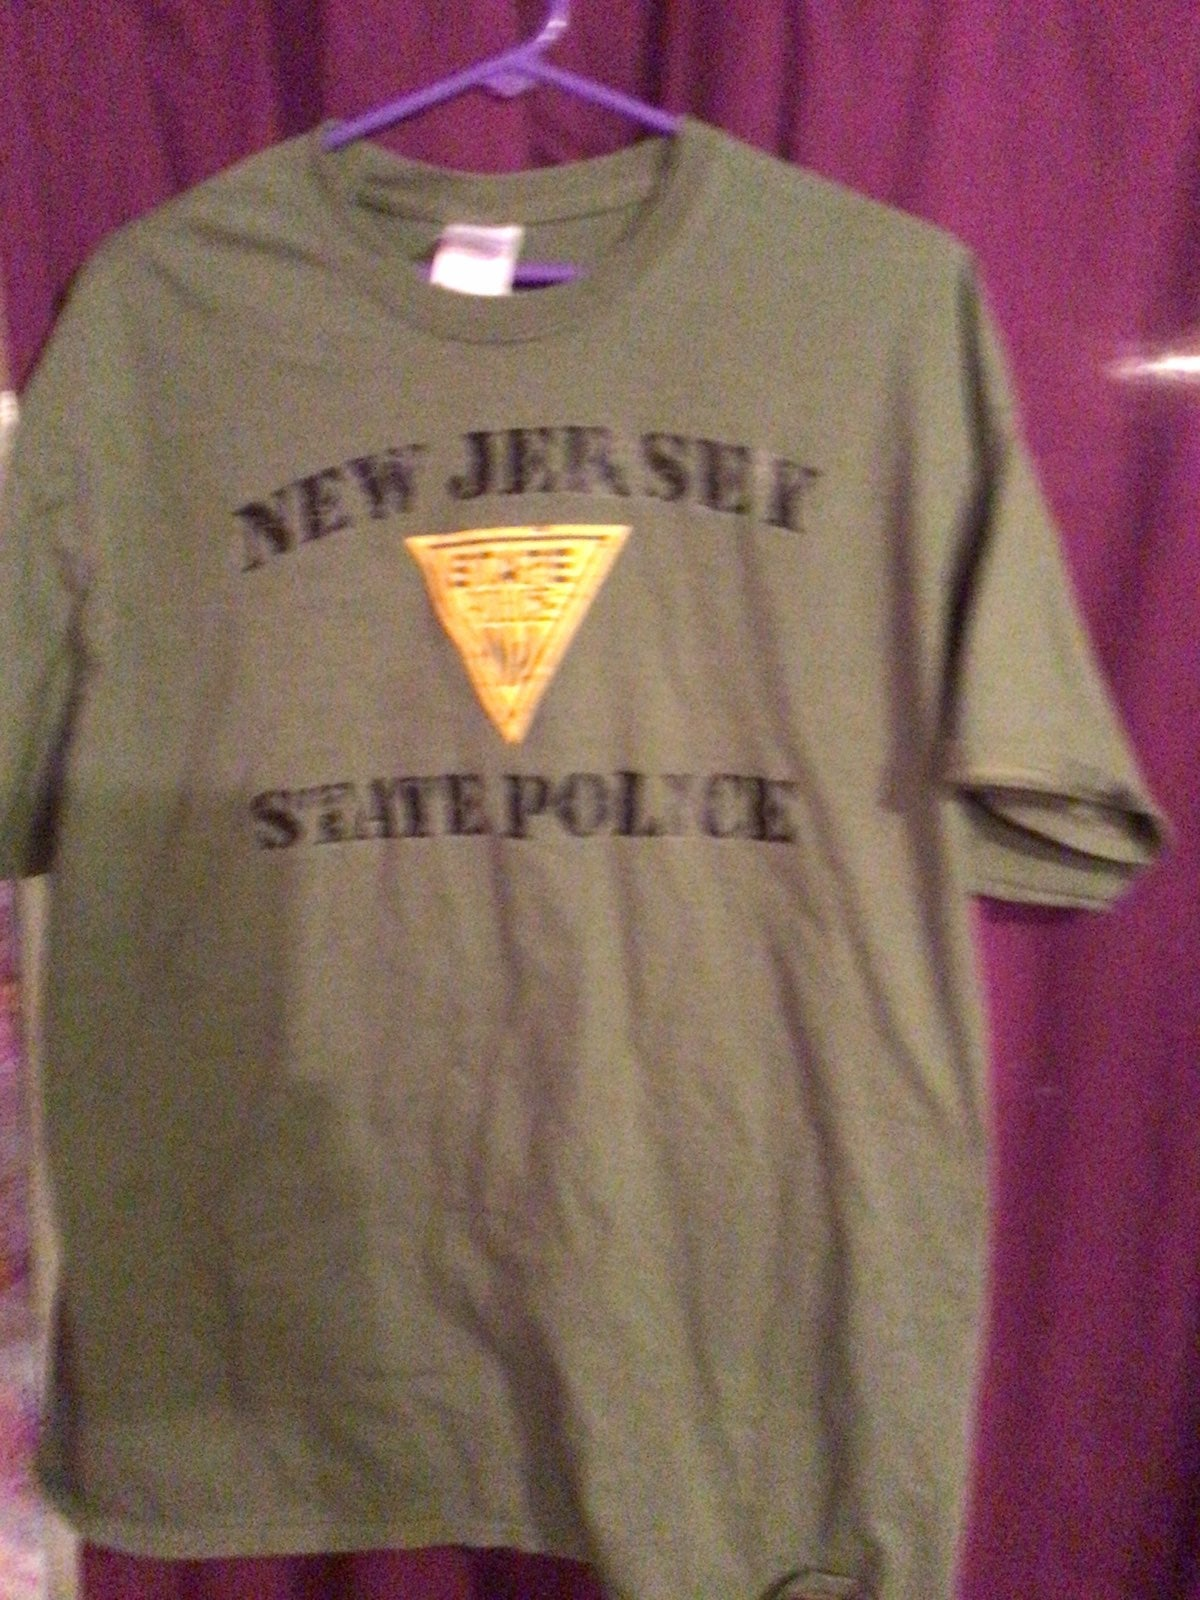 New jersey state police tee shirt